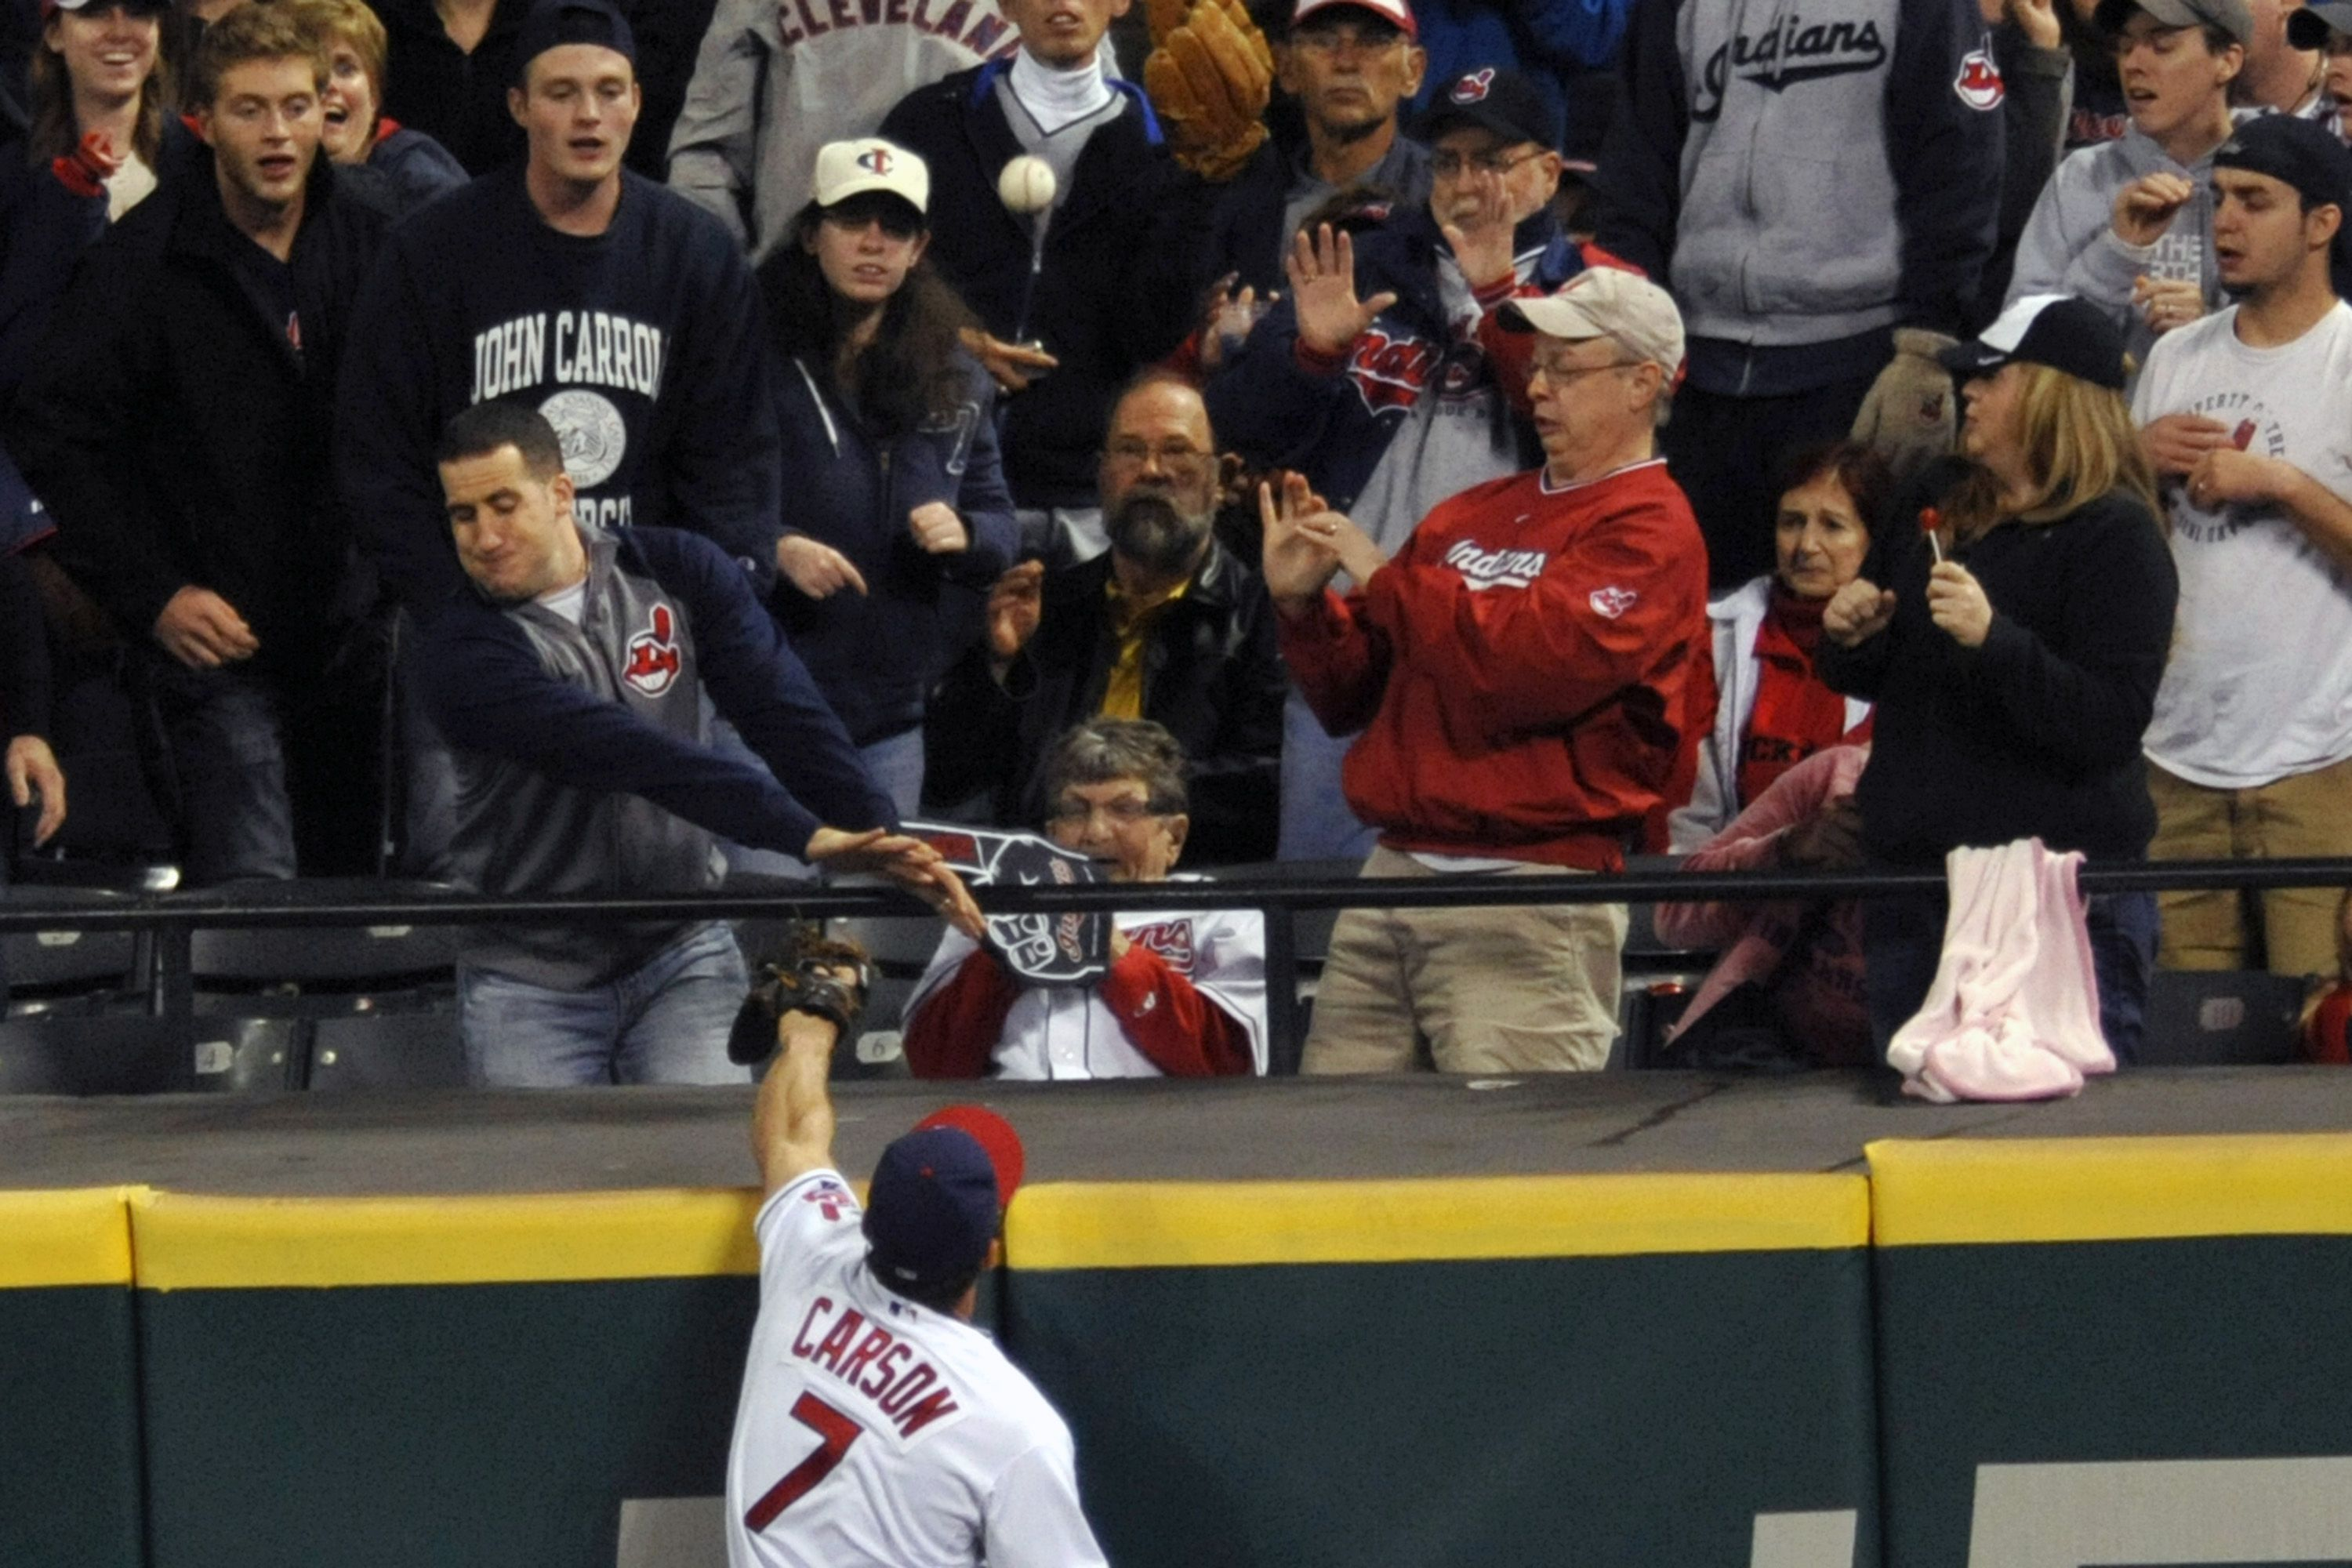 CrowdCam Hot Shot: Cleveland Indians right fielder Matt Carson reaches for a solo home run by Chicago White Sox center fielder Alejandro De Aza in the ninth inning at Progressive Field. Photo by David Richard